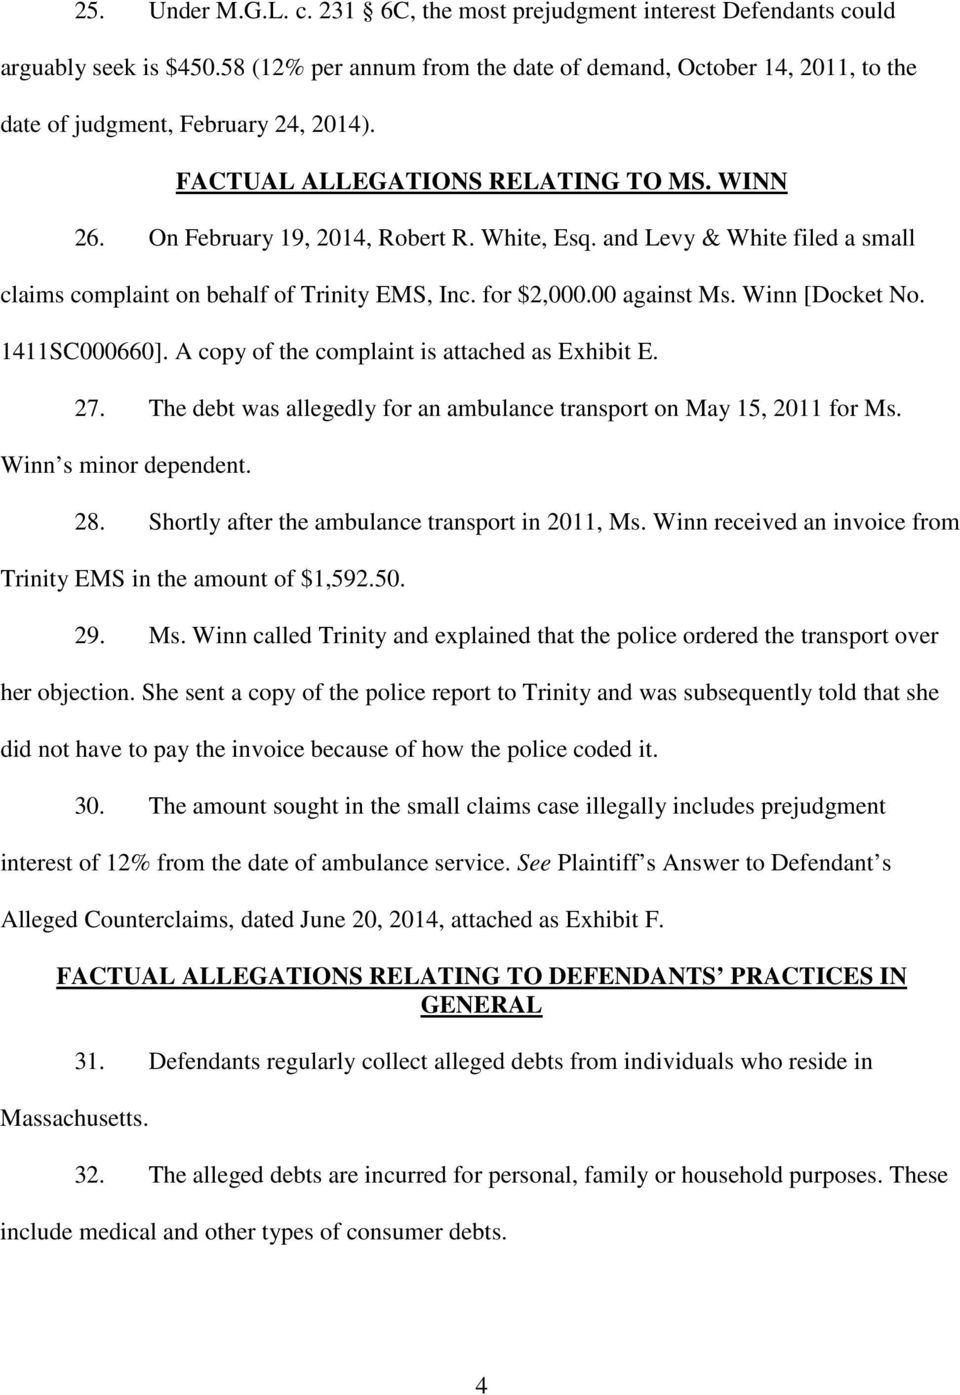 and Levy & White filed a small claims complaint on behalf of Trinity EMS, Inc. for $2,000.00 against Ms. Winn [Docket No. 1411SC000660]. A copy of the complaint is attached as Exhibit E. 27.